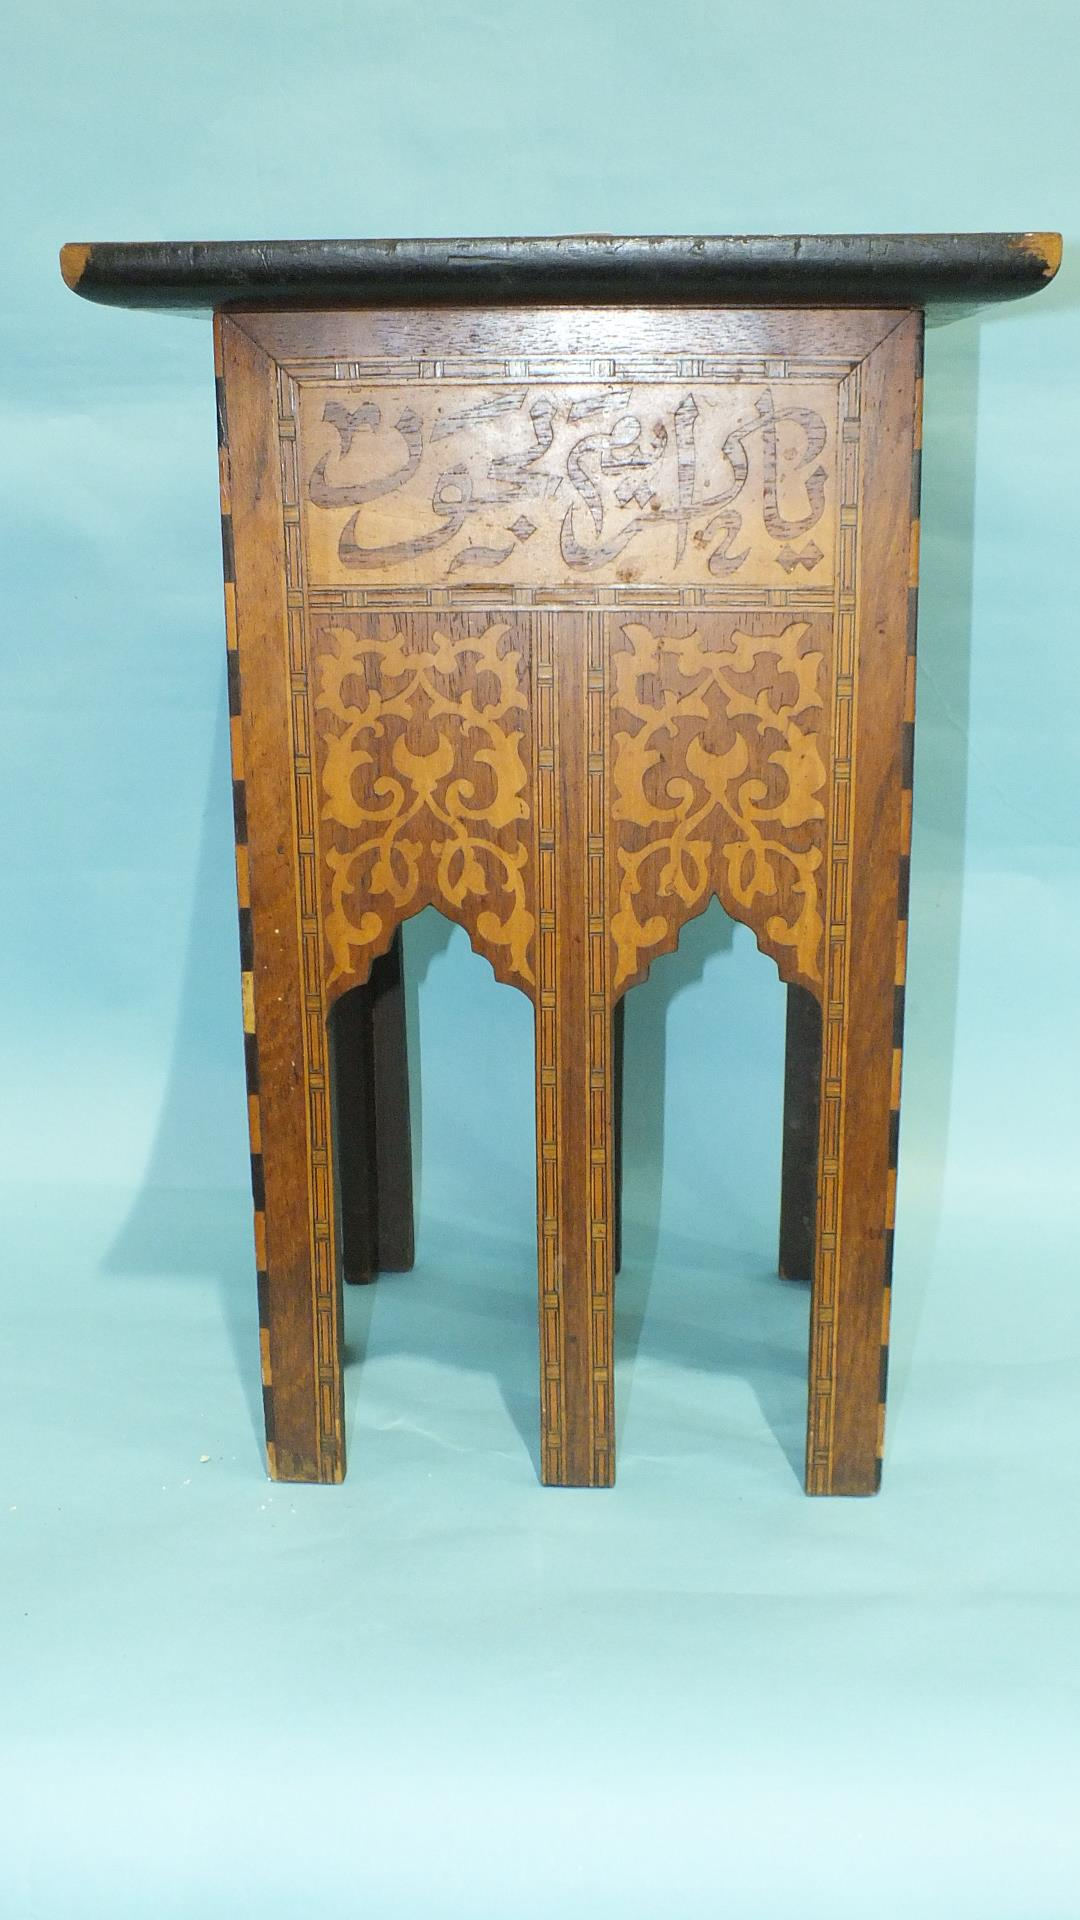 An early-20th century Persian hardwood square table with overall marquetry decoration, the top